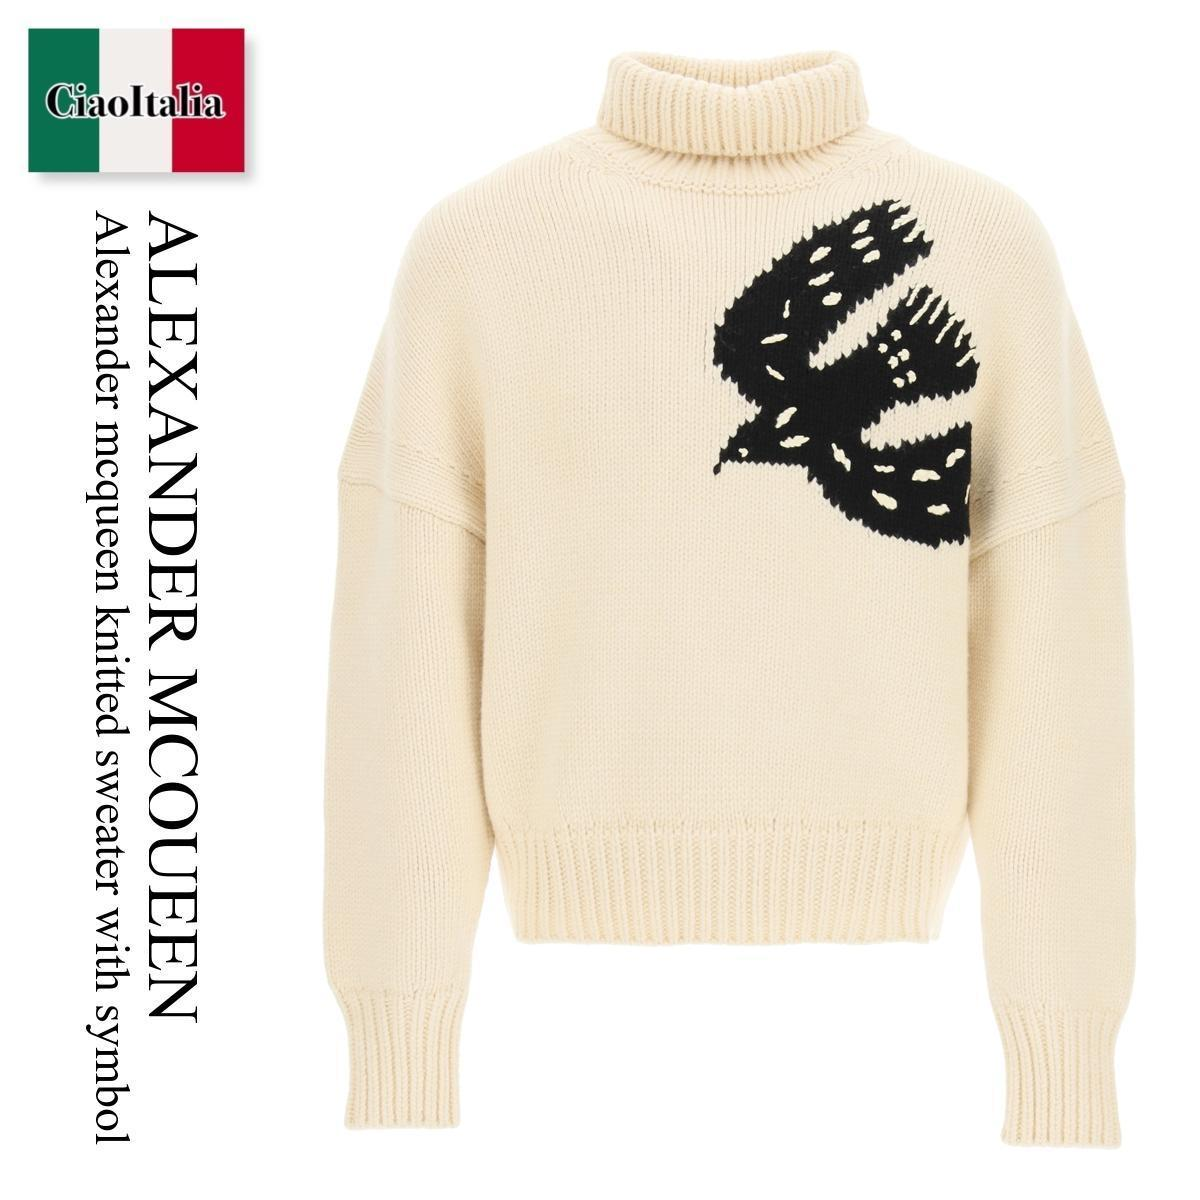 Alexander mcqueen knitted sweater with symbol (alexander mcqueen/ニット・セーター) ALEXANDER MCQUEEN KNITTED SWEATER WITH S  668967 Q1XBW  668967 Q1XBW 9161